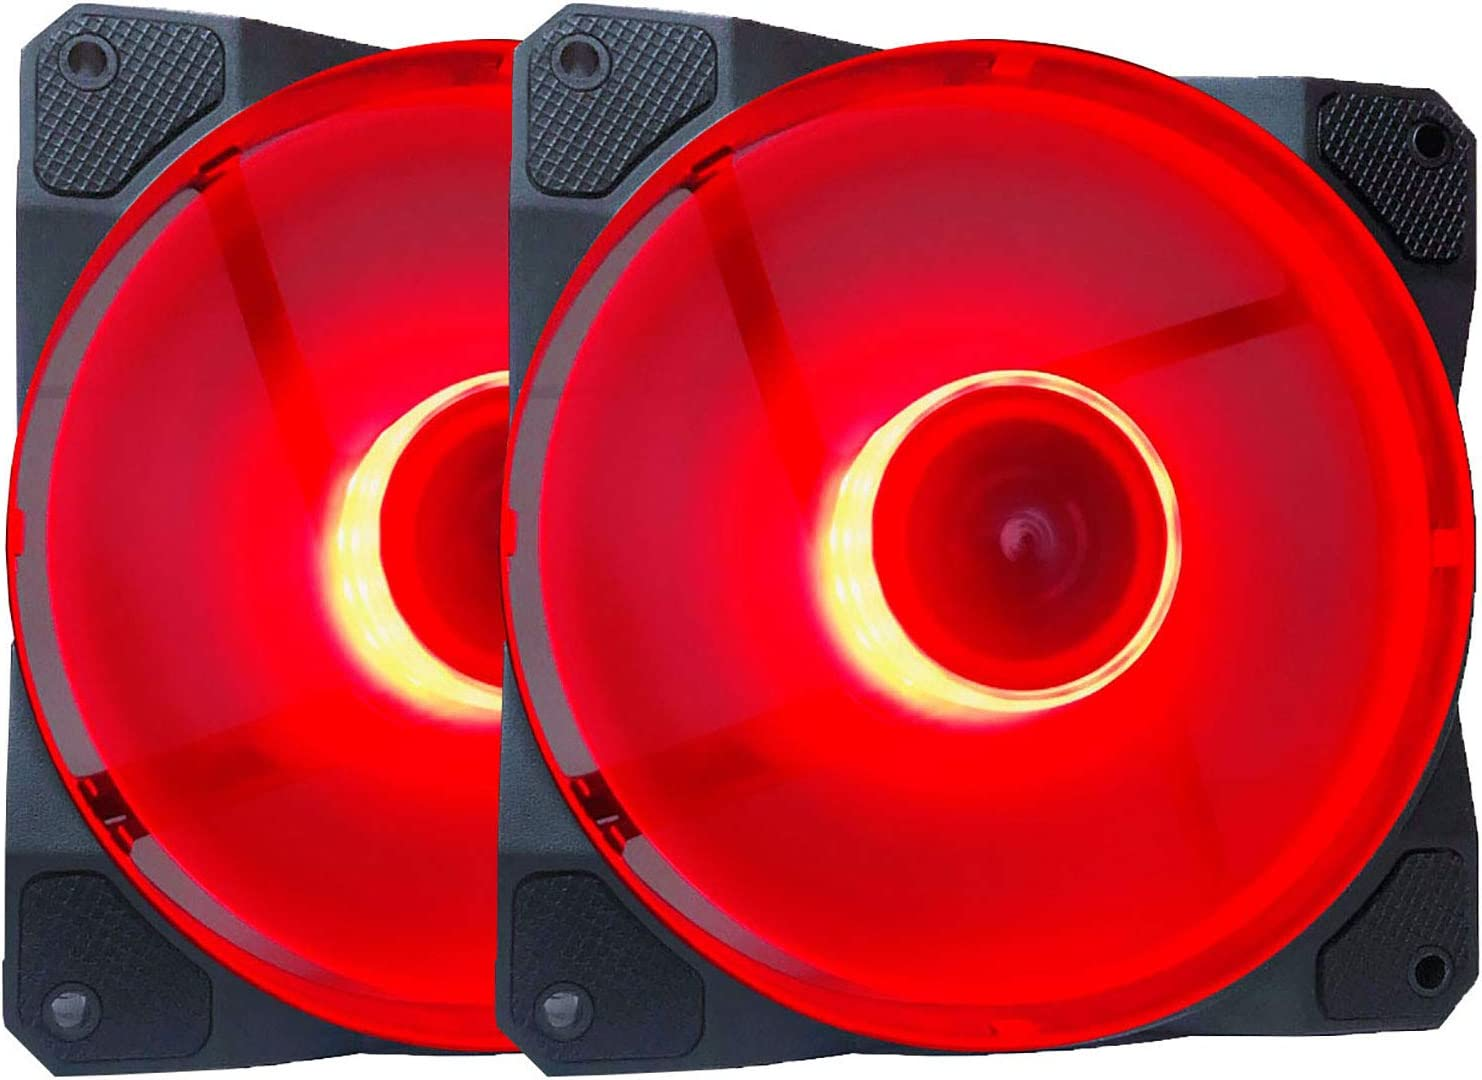 APEVIA CO212L-RD Cosmos 120mm Red LED Ultra Silent Case Fan w/ 16 LEDs & Anti-Vibration Rubber Pads (2 Pk)